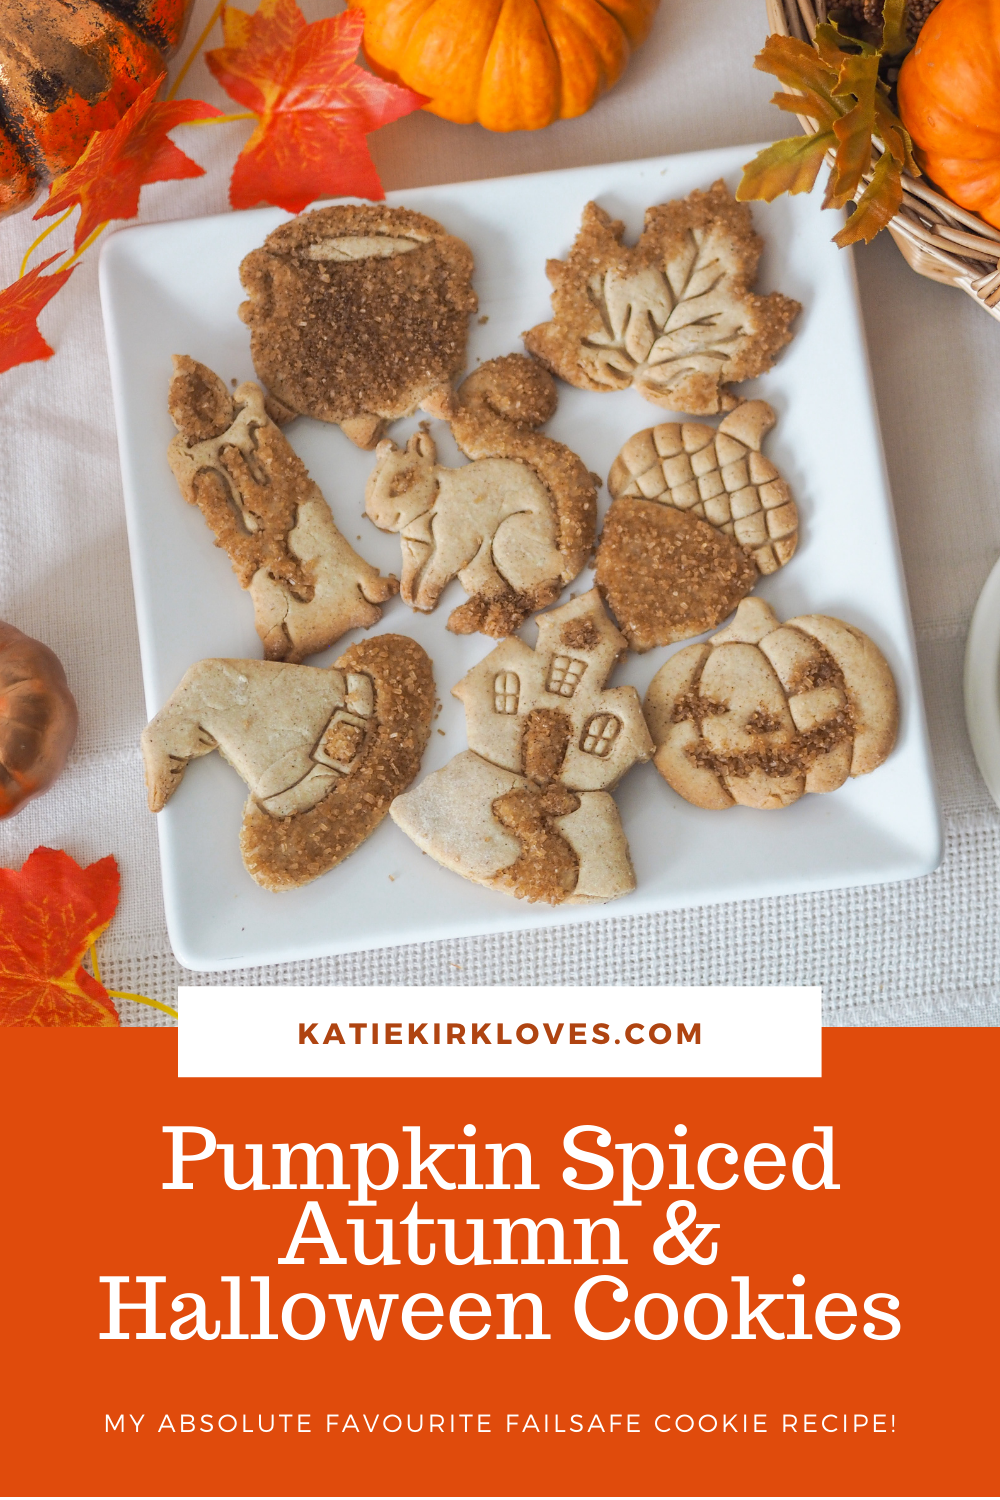 PIN IT! Pumpkin Spiced Autumn & Halloween Cookie Recipe, Katie Kirk Loves, Autumn Recipe, Fall Recipe, UK Food Blogger, Sugar Cookies, Pumpkin Spice Cookies, Pumpkin Spice Sugar Cookies, Halloween Recipe, Autumn Baking, Fall Baking, Biscuit Recipe, UK Recipe